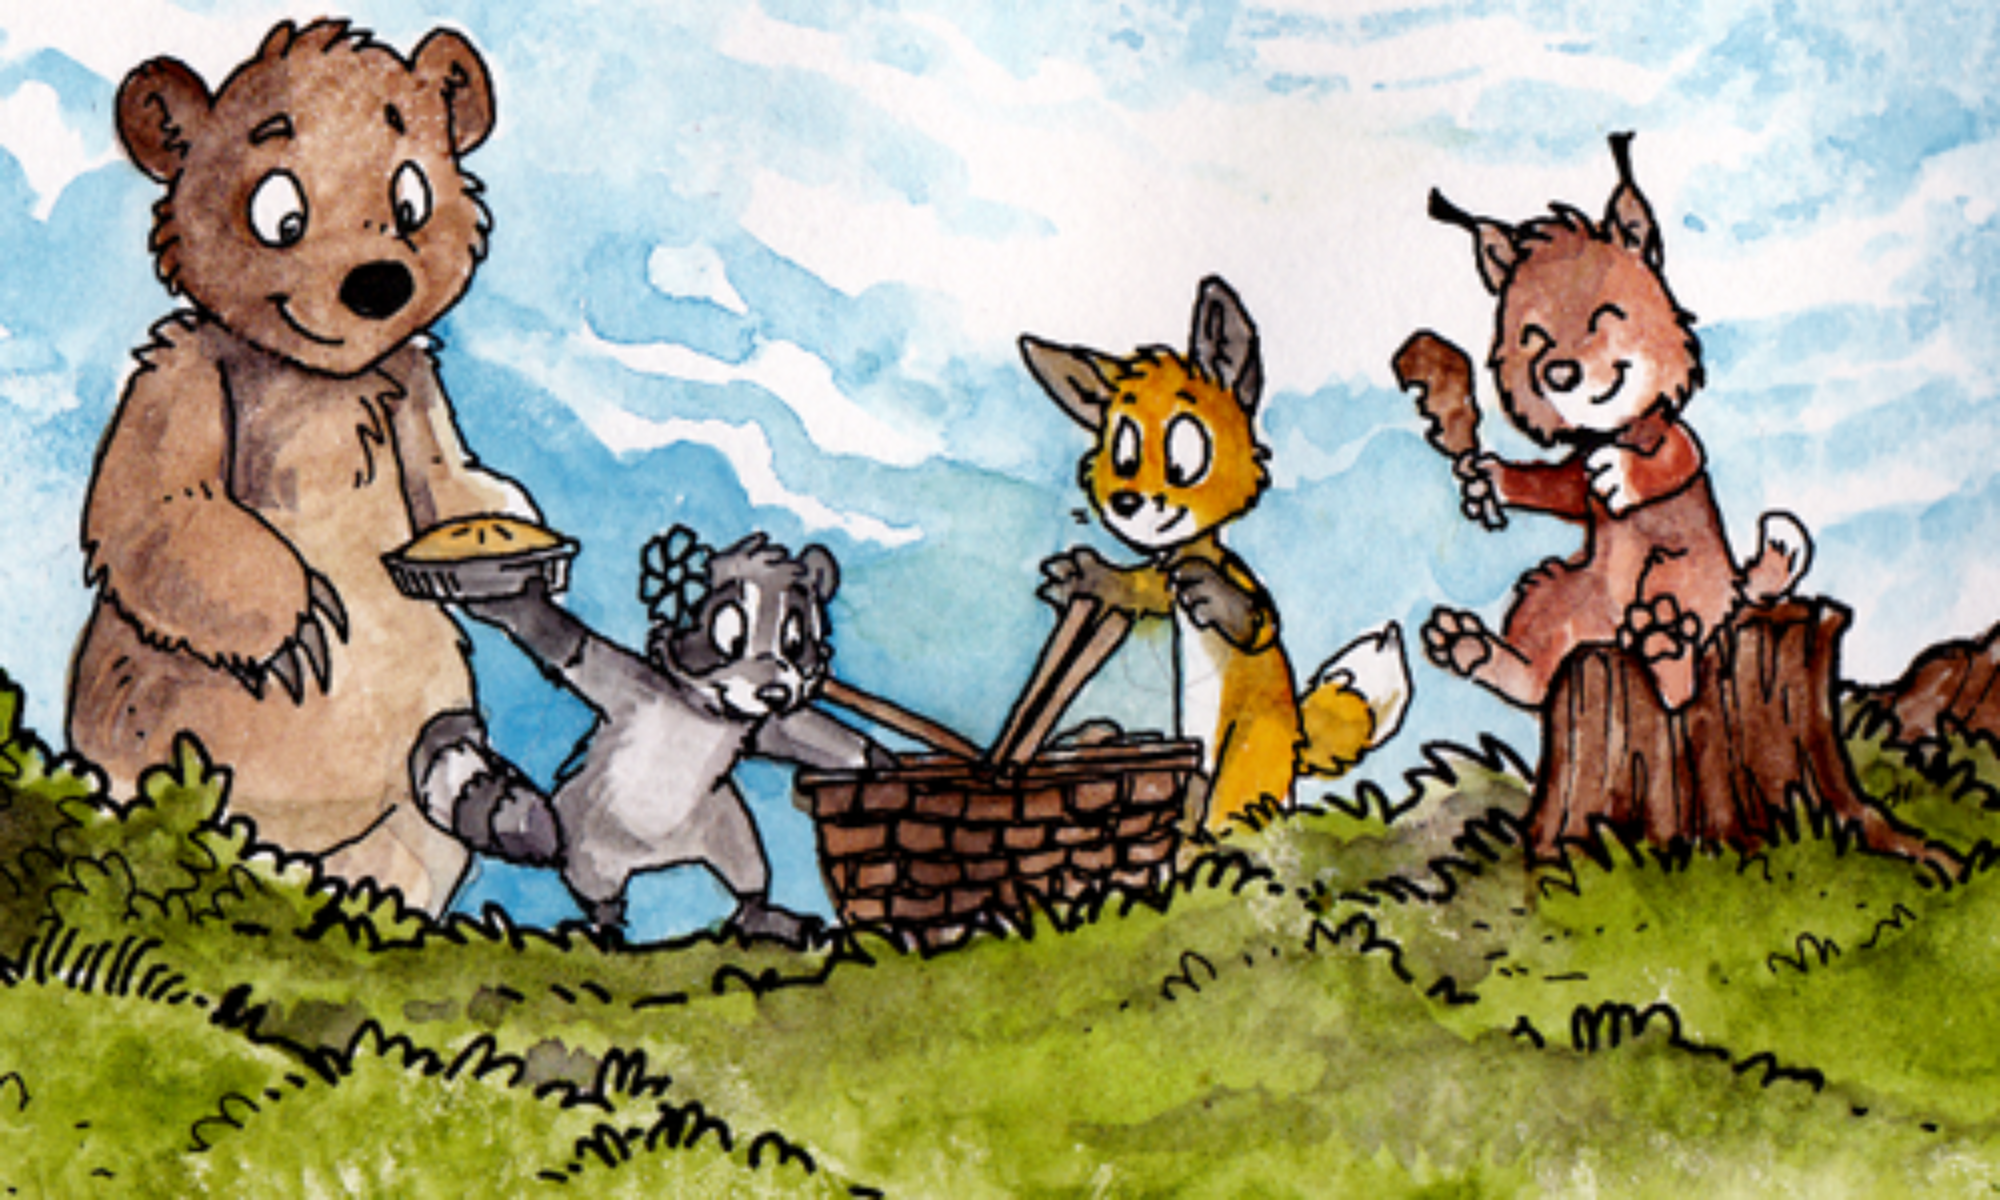 Furry Picnic - The Seventh!